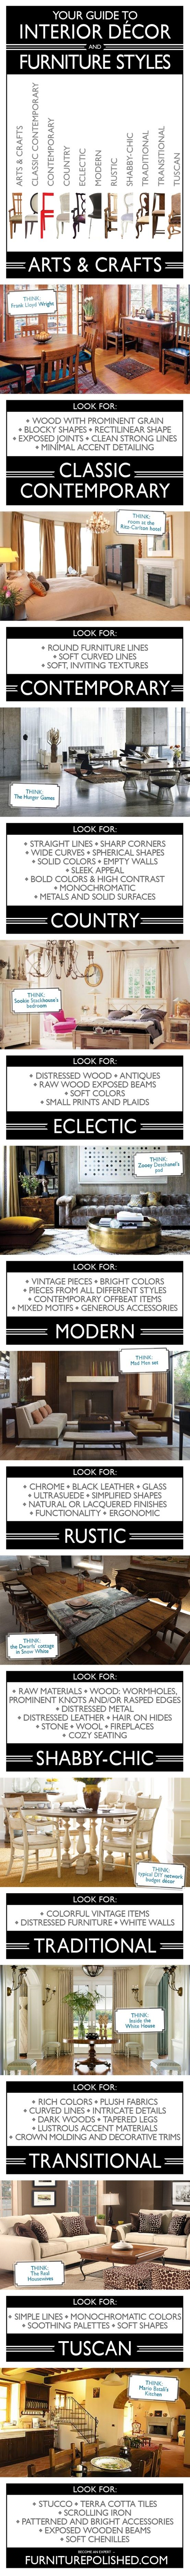 style guide @ Home Ideas Worth Pinning